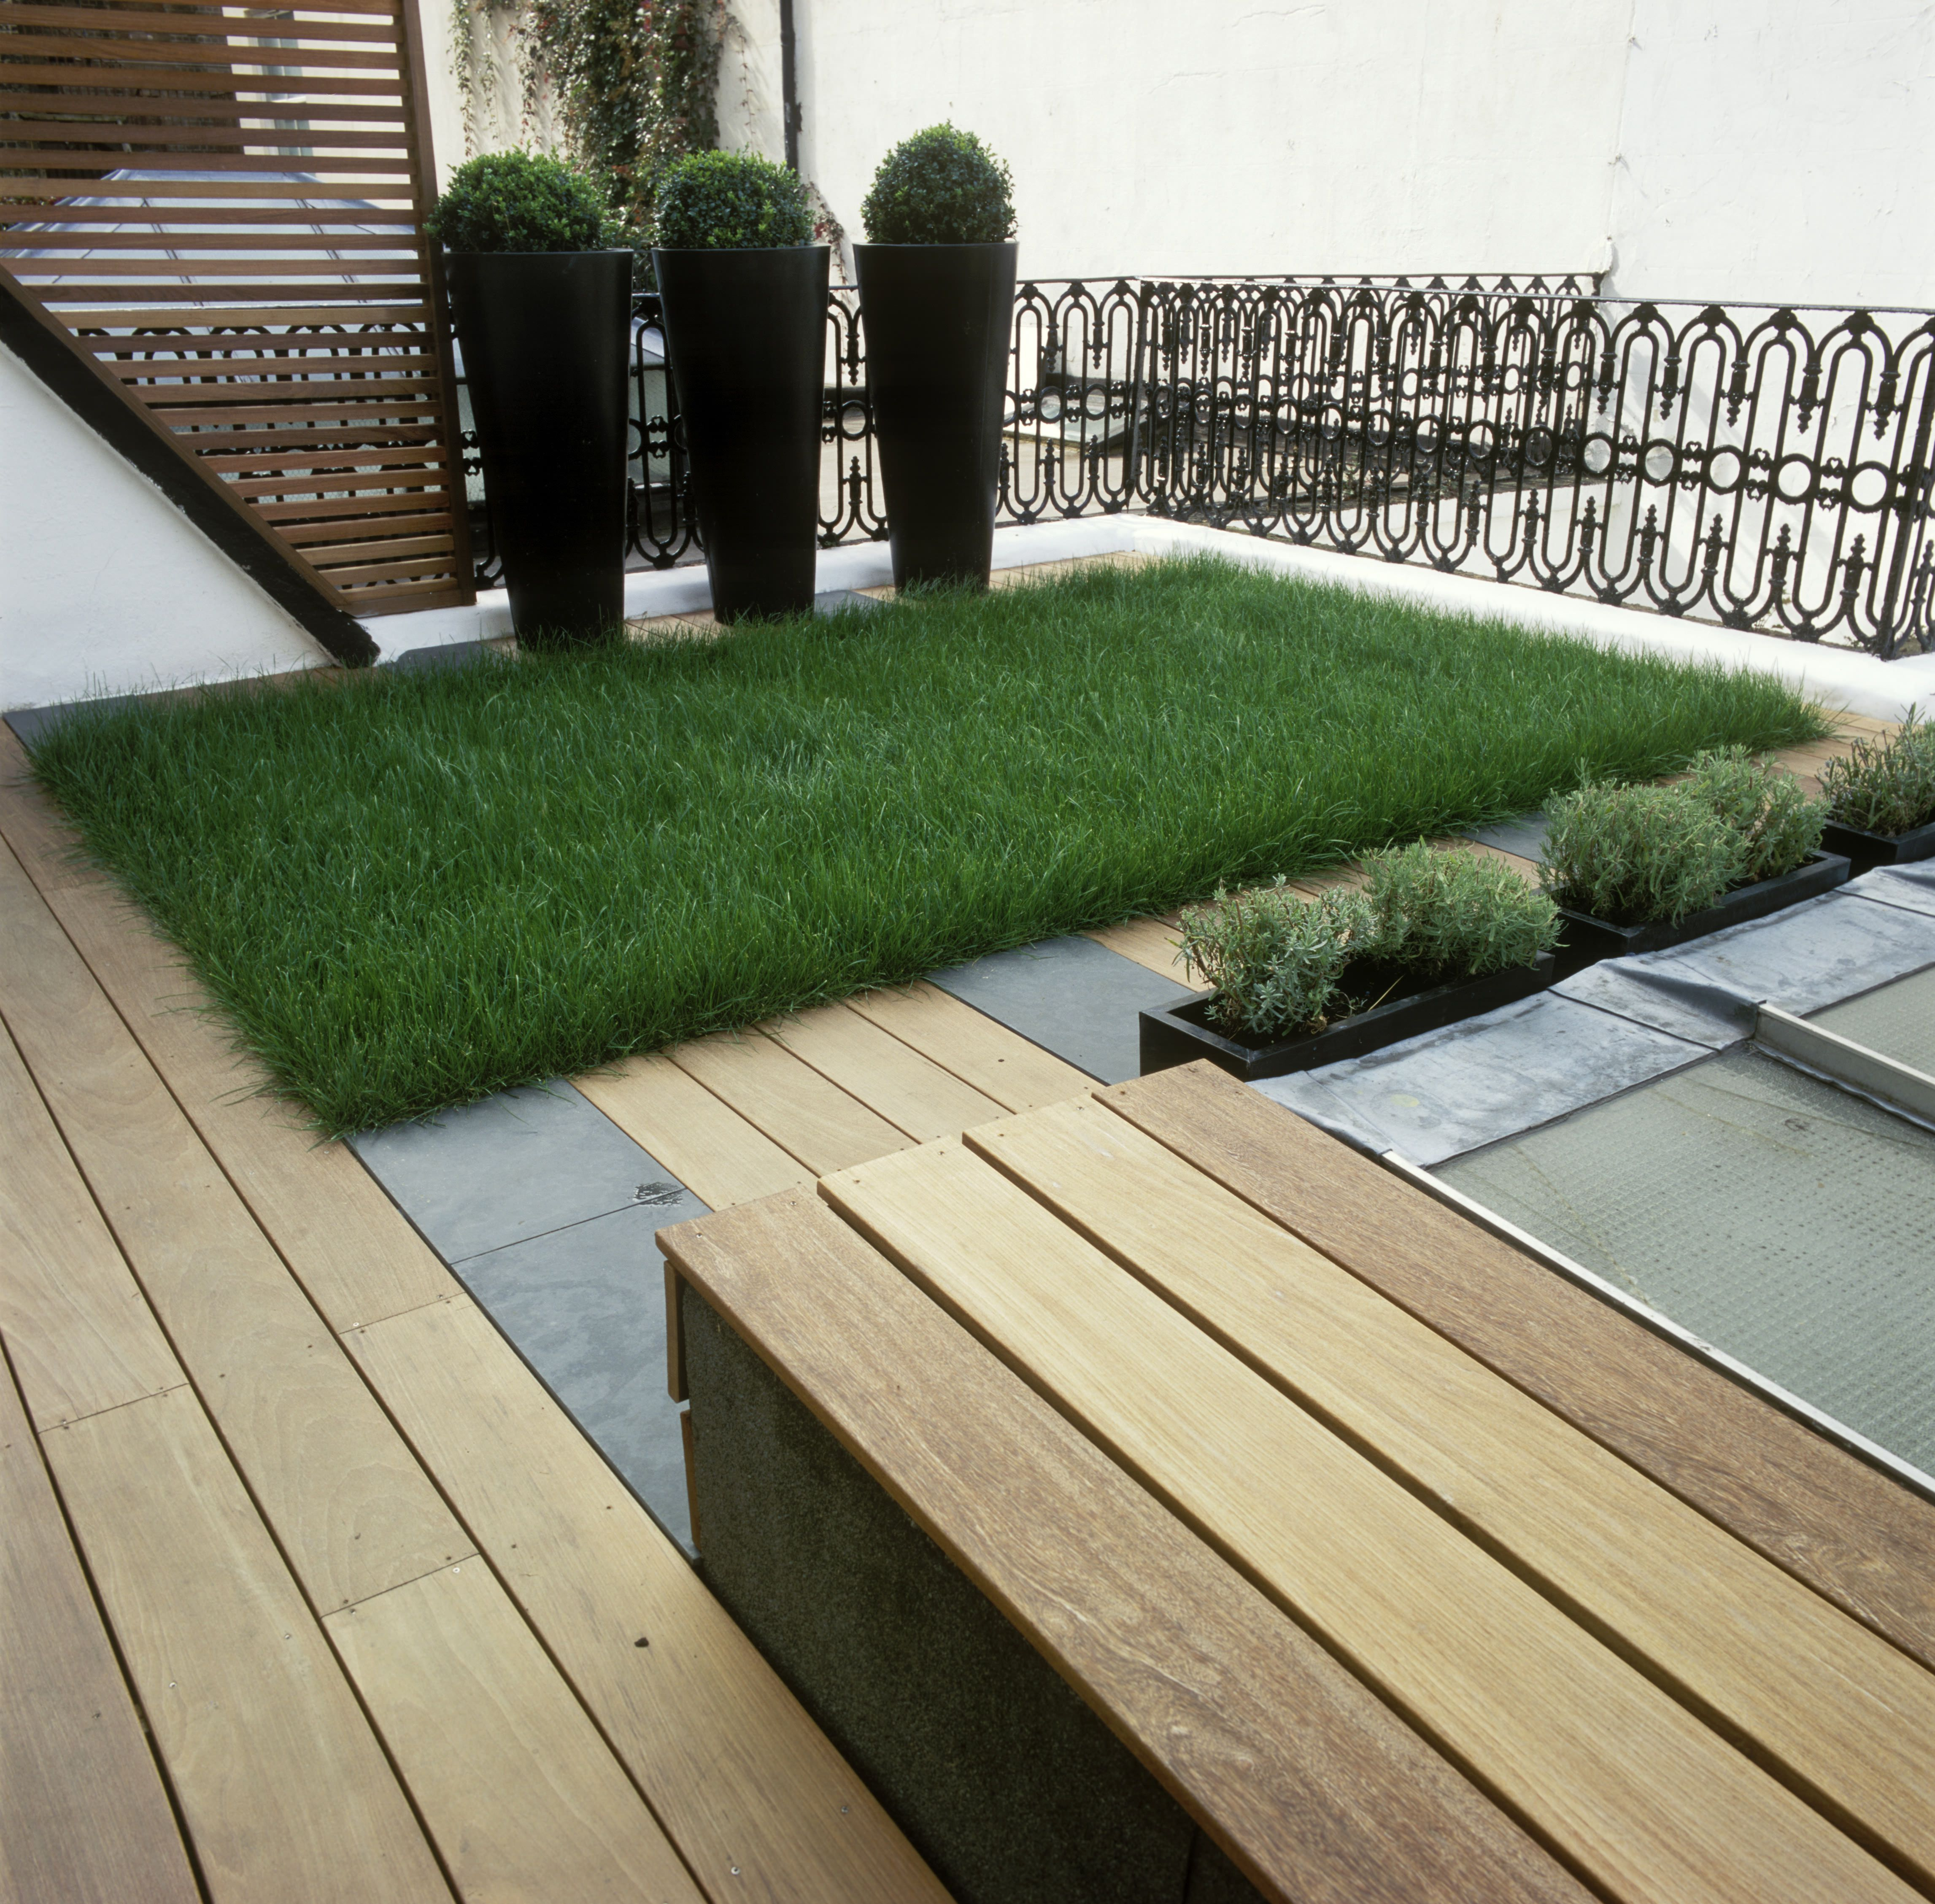 A deck made of ipe wood